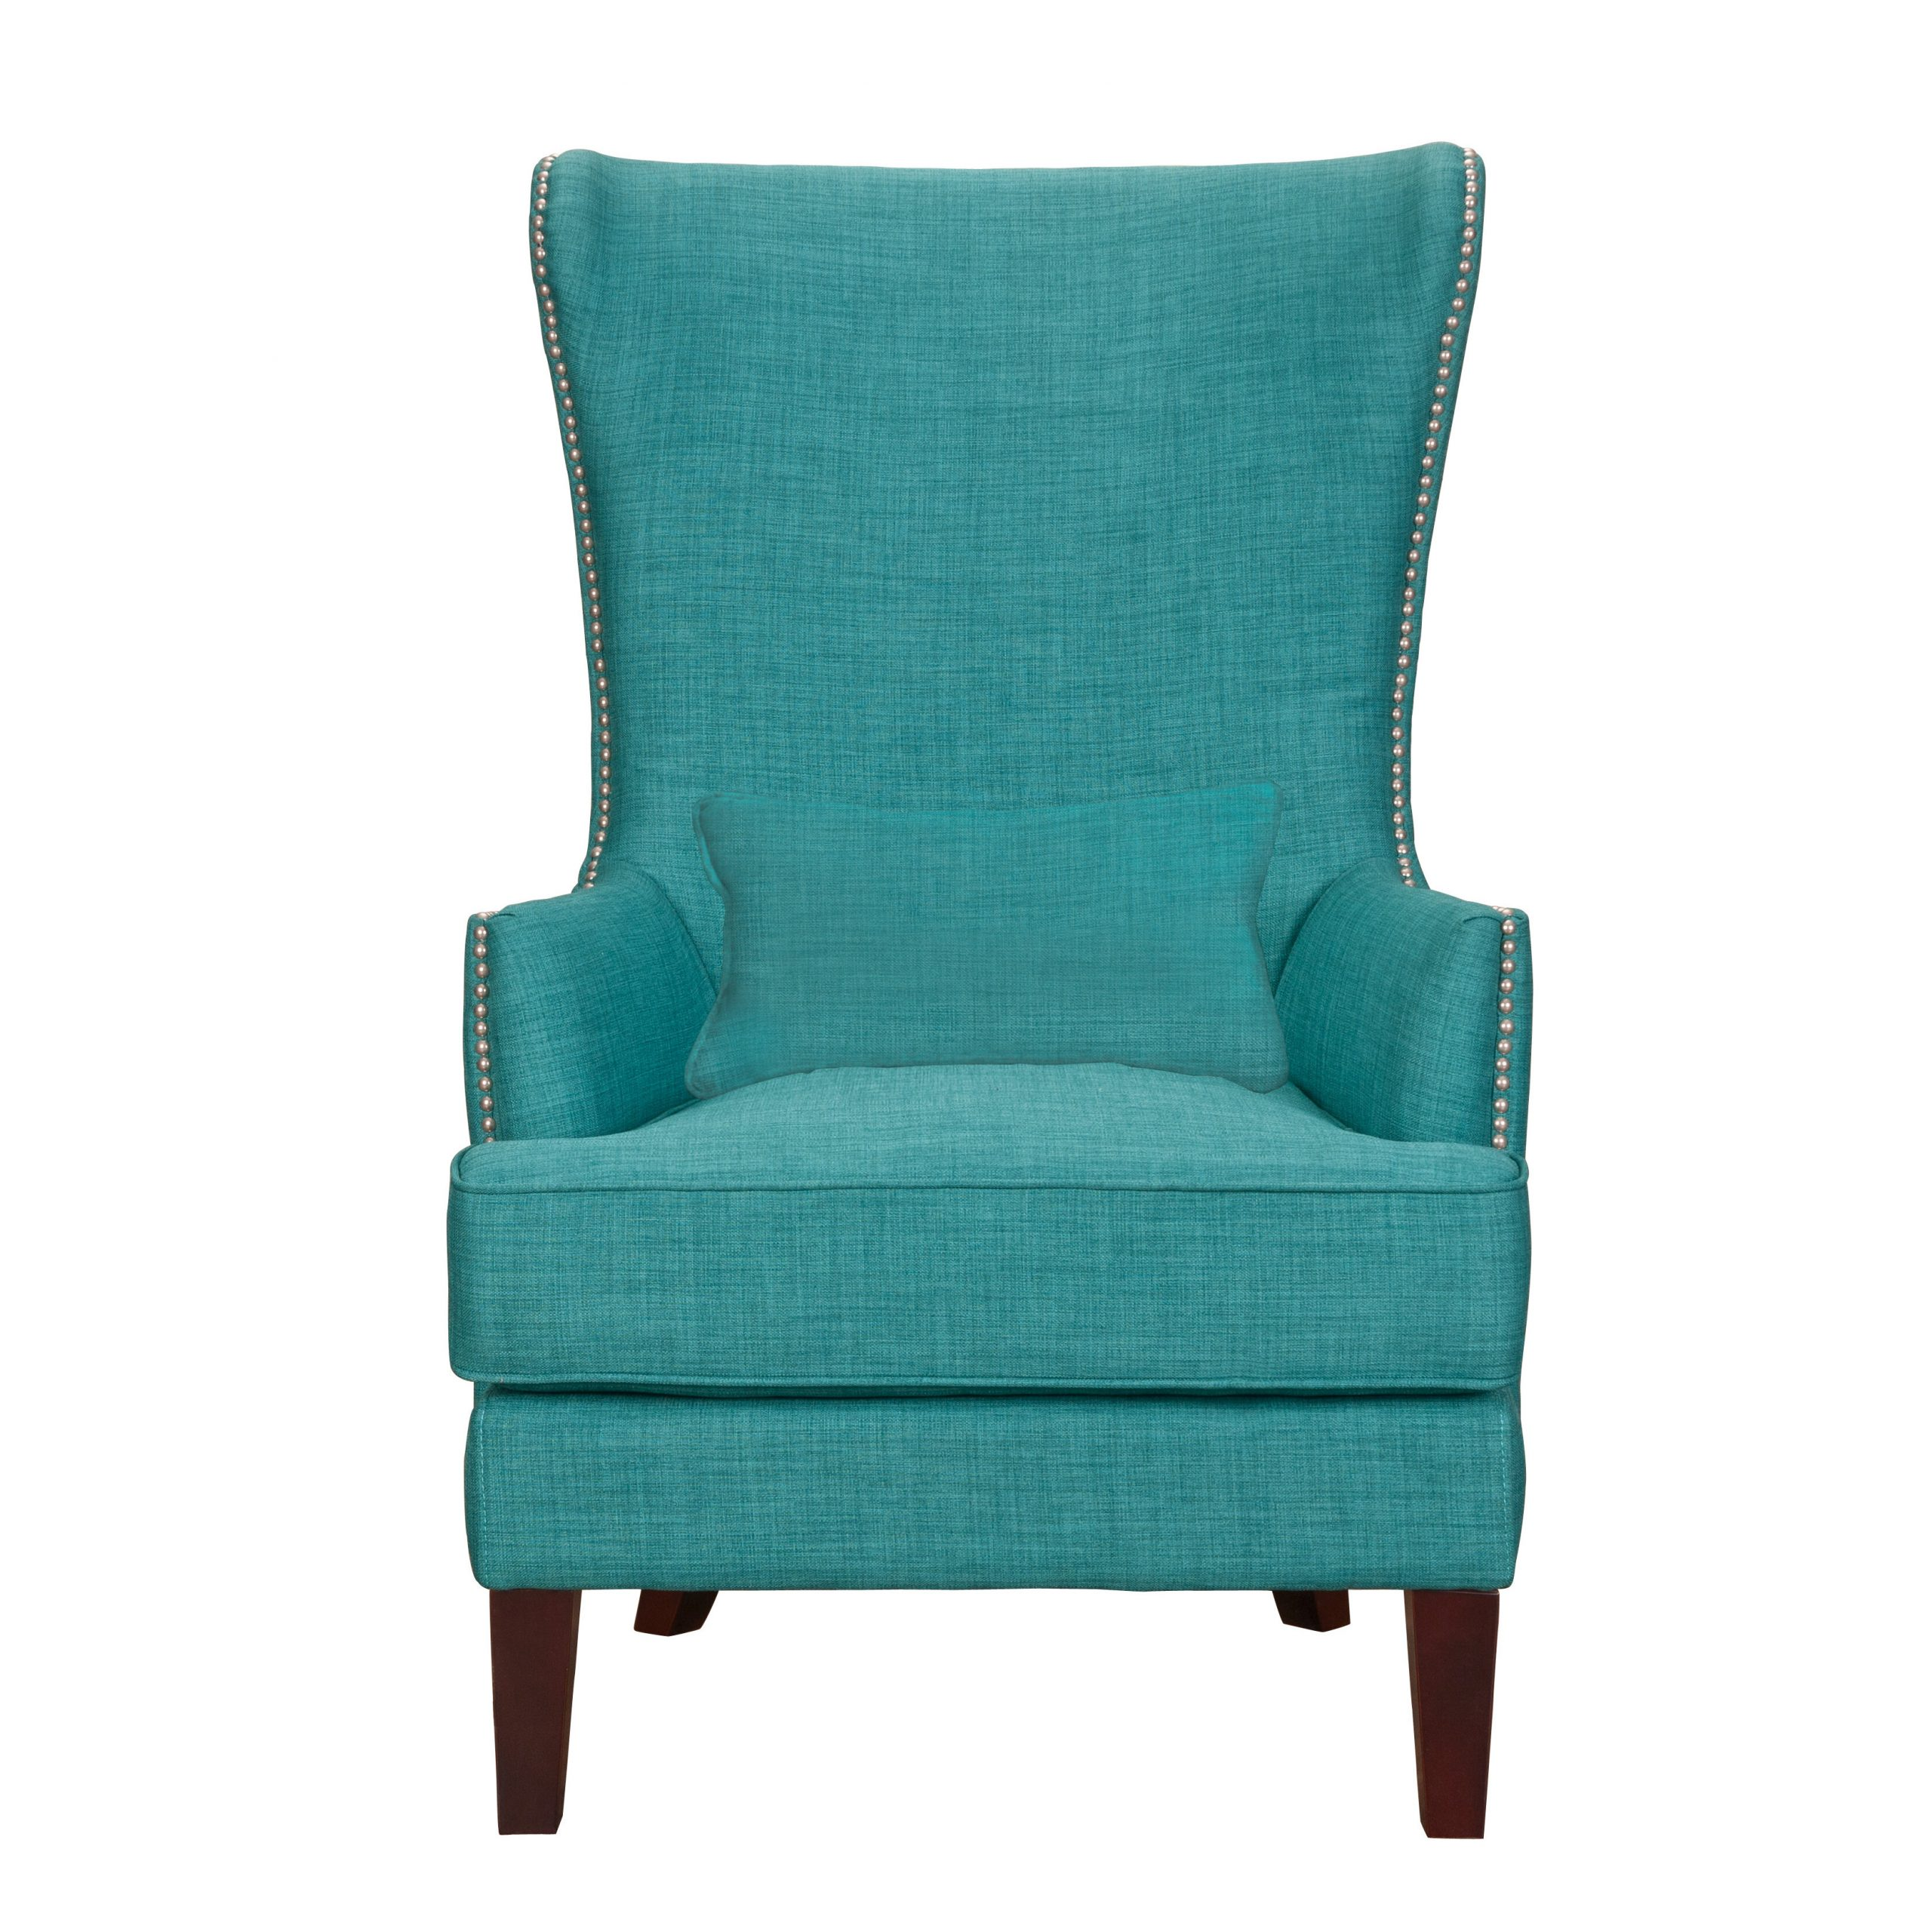 Pringle Wingback Chair Intended For Andover Wingback Chairs (View 5 of 15)